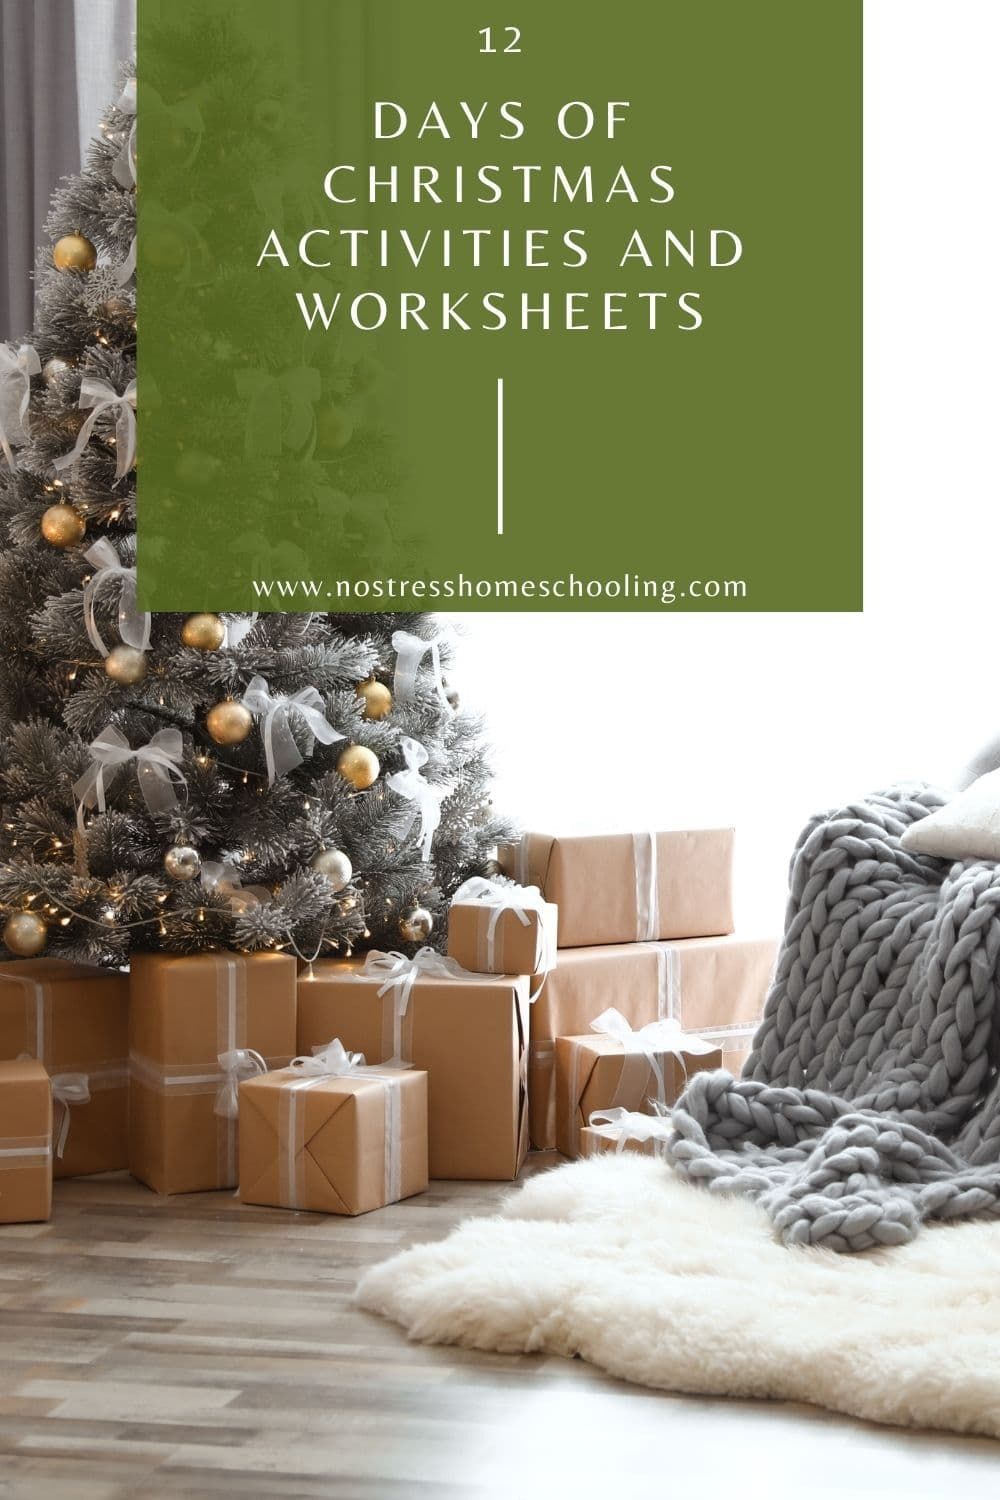 12 days of christmas activities and christmas worksheets image with green overlay